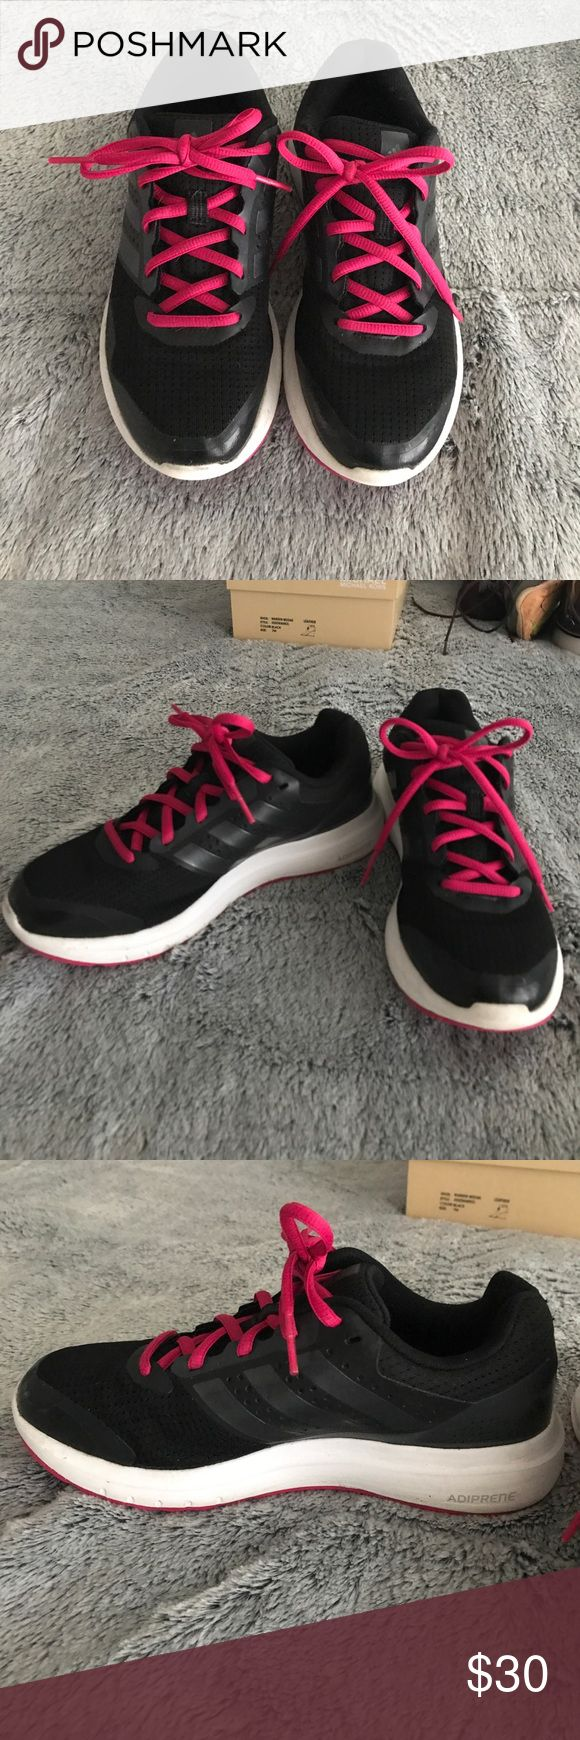 Adidas Adiprene running sneakers Adidas adiprene running sneakers. Black with hot pink laces. Worn only a few times. Light and great for running adidas Shoes Sneakers